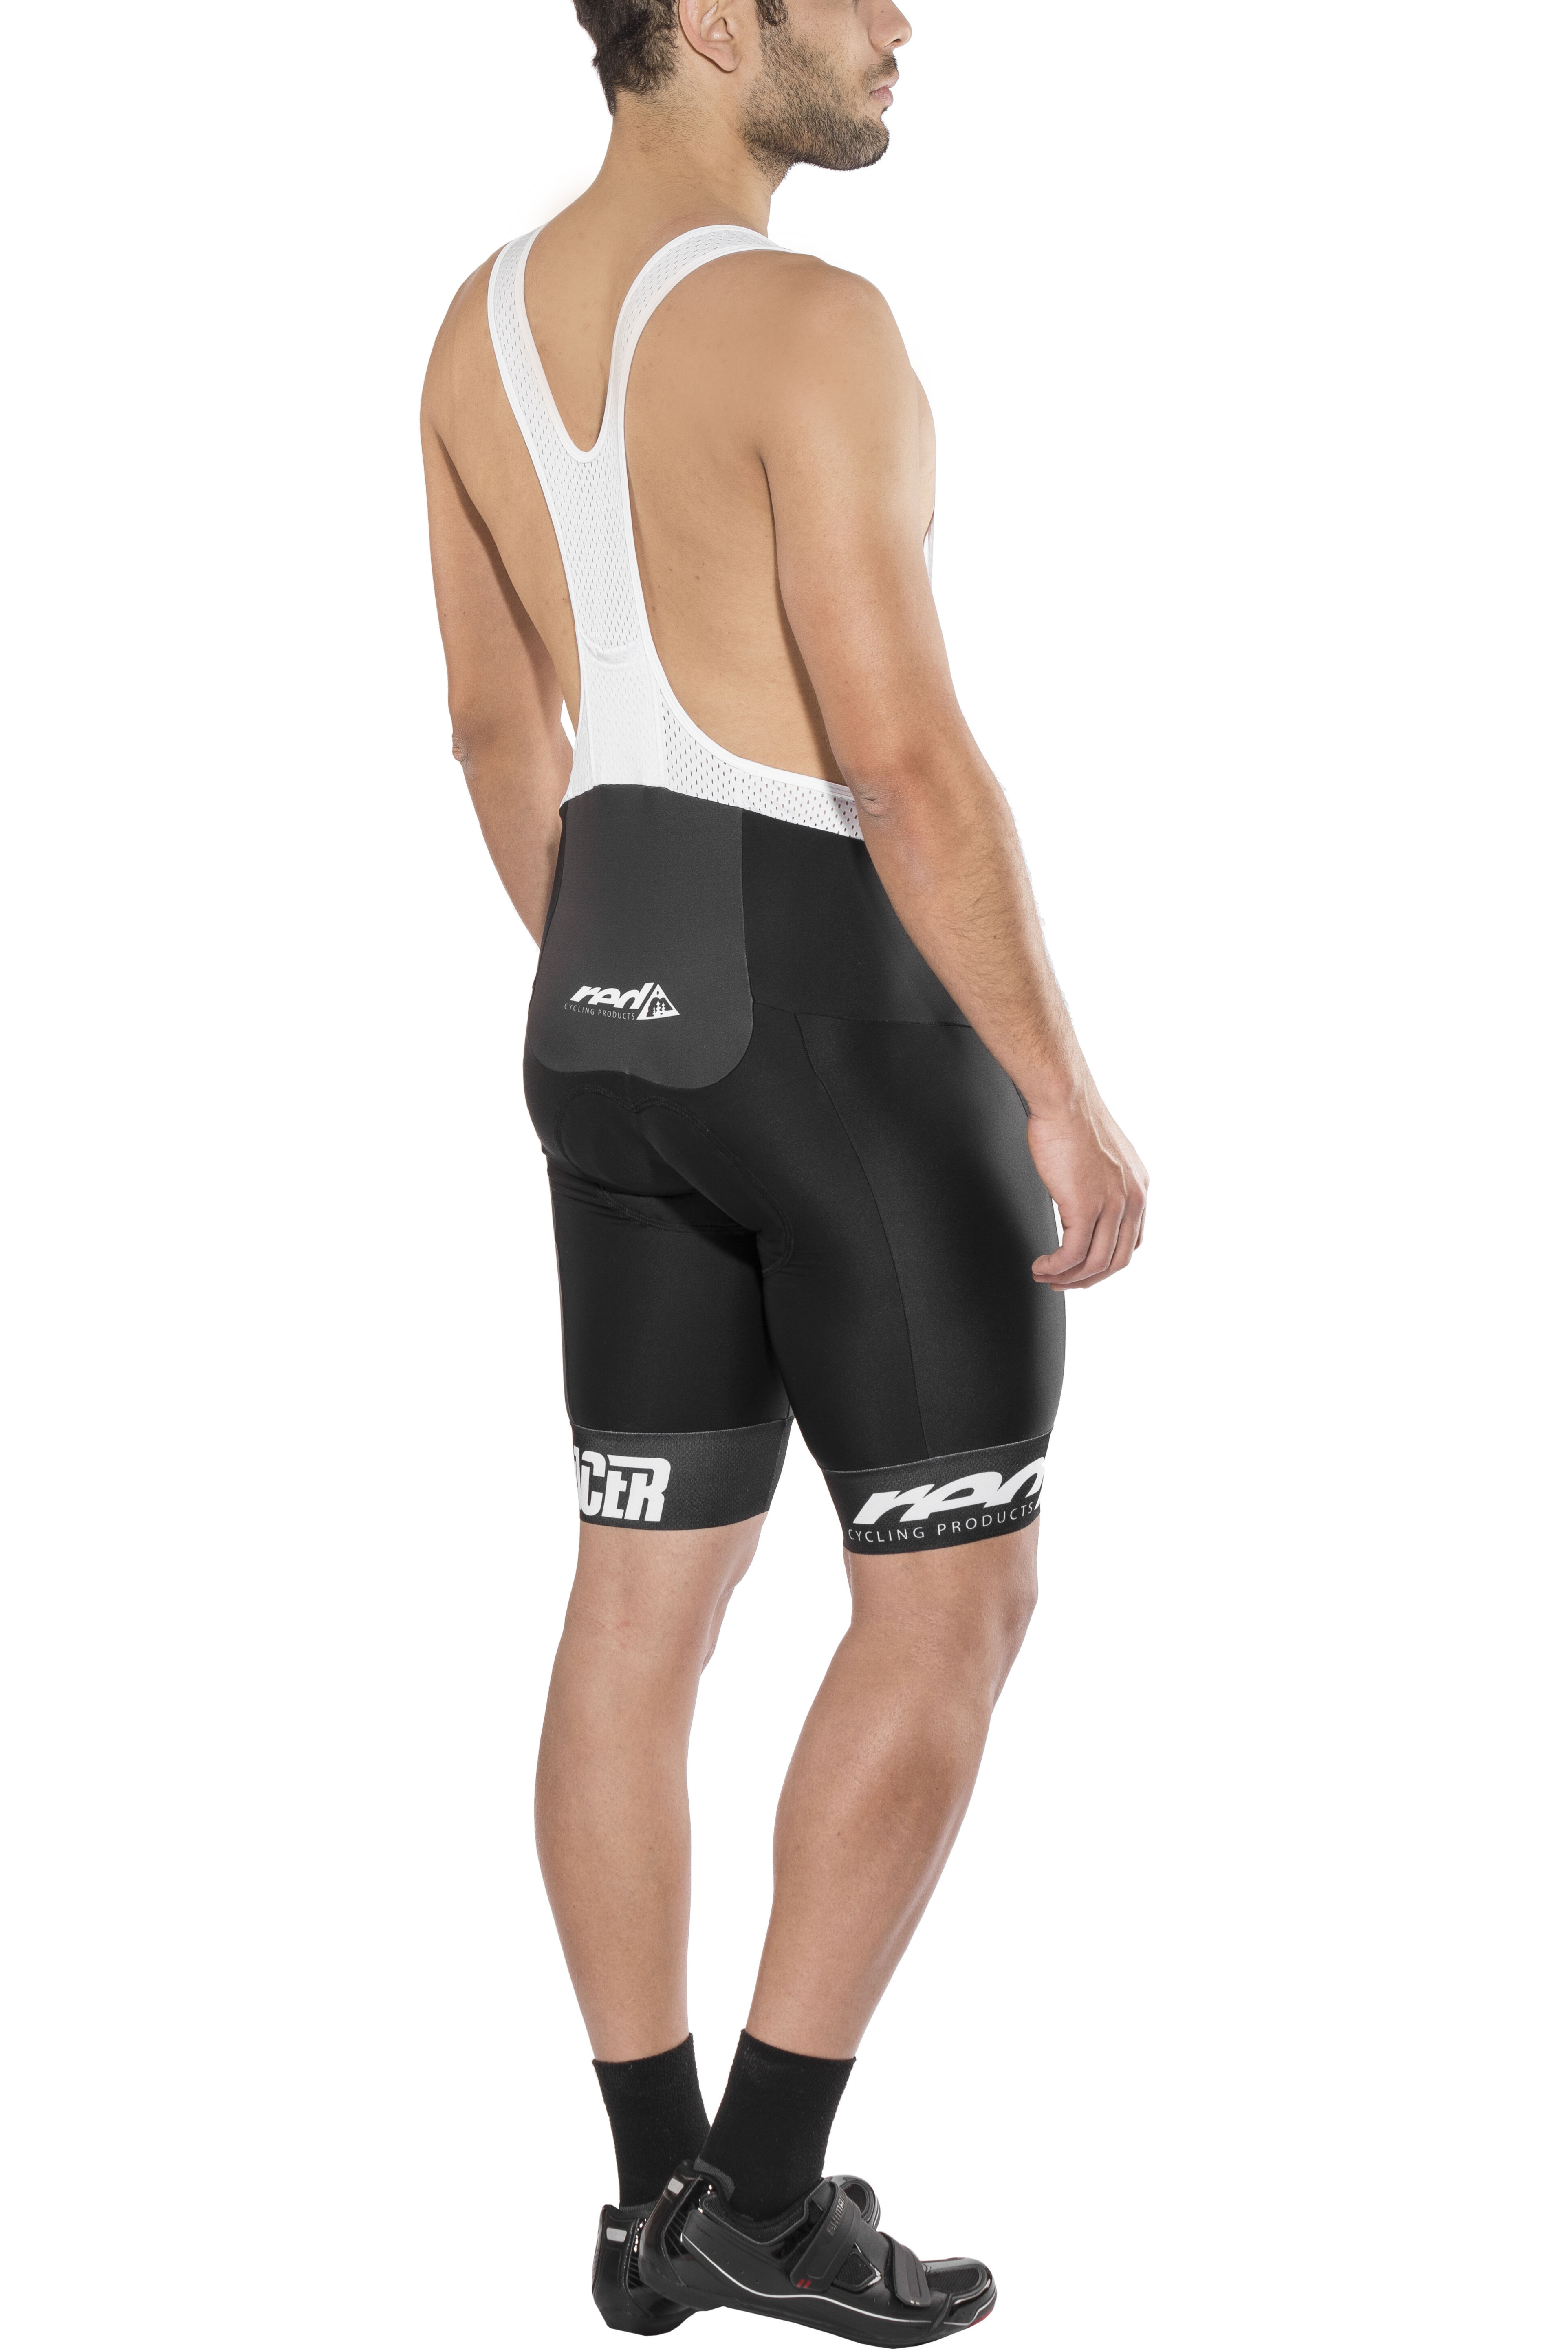 0a90cd39c09 Red Cycling Products Pro Race Bib Shorts Men black at Bikester.co.uk